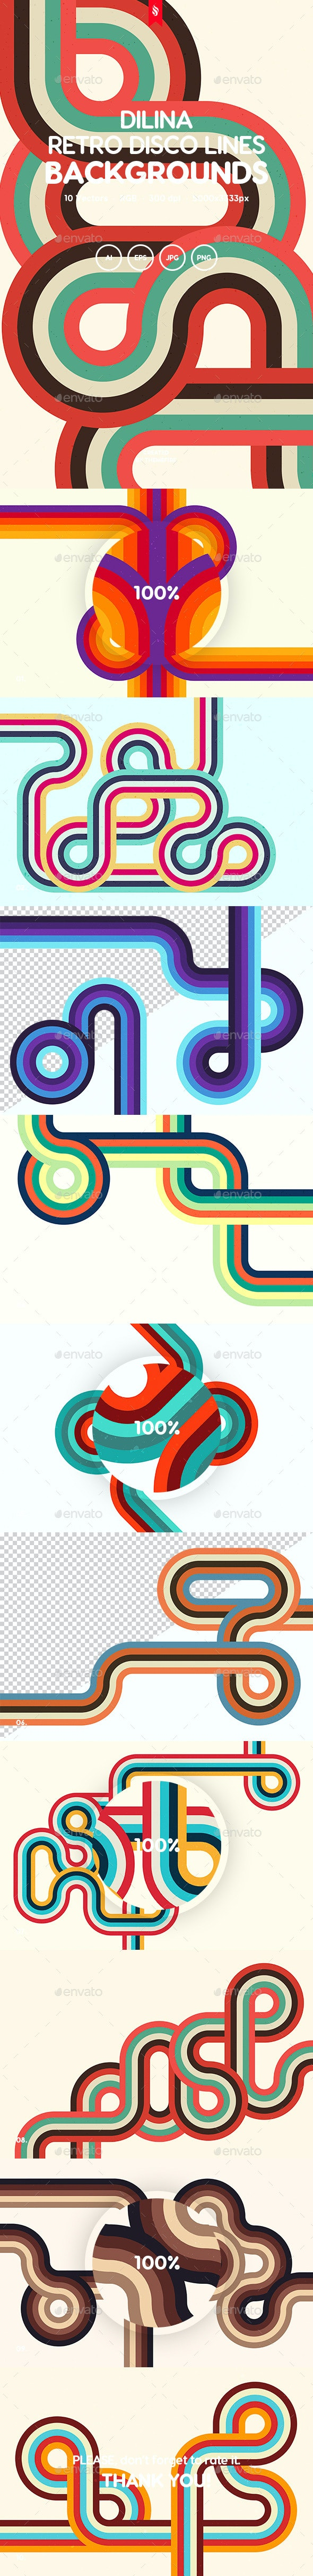 Dilina - Retro Colorful Disco Lines Vector Backgrounds Pack - Abstract Backgrounds